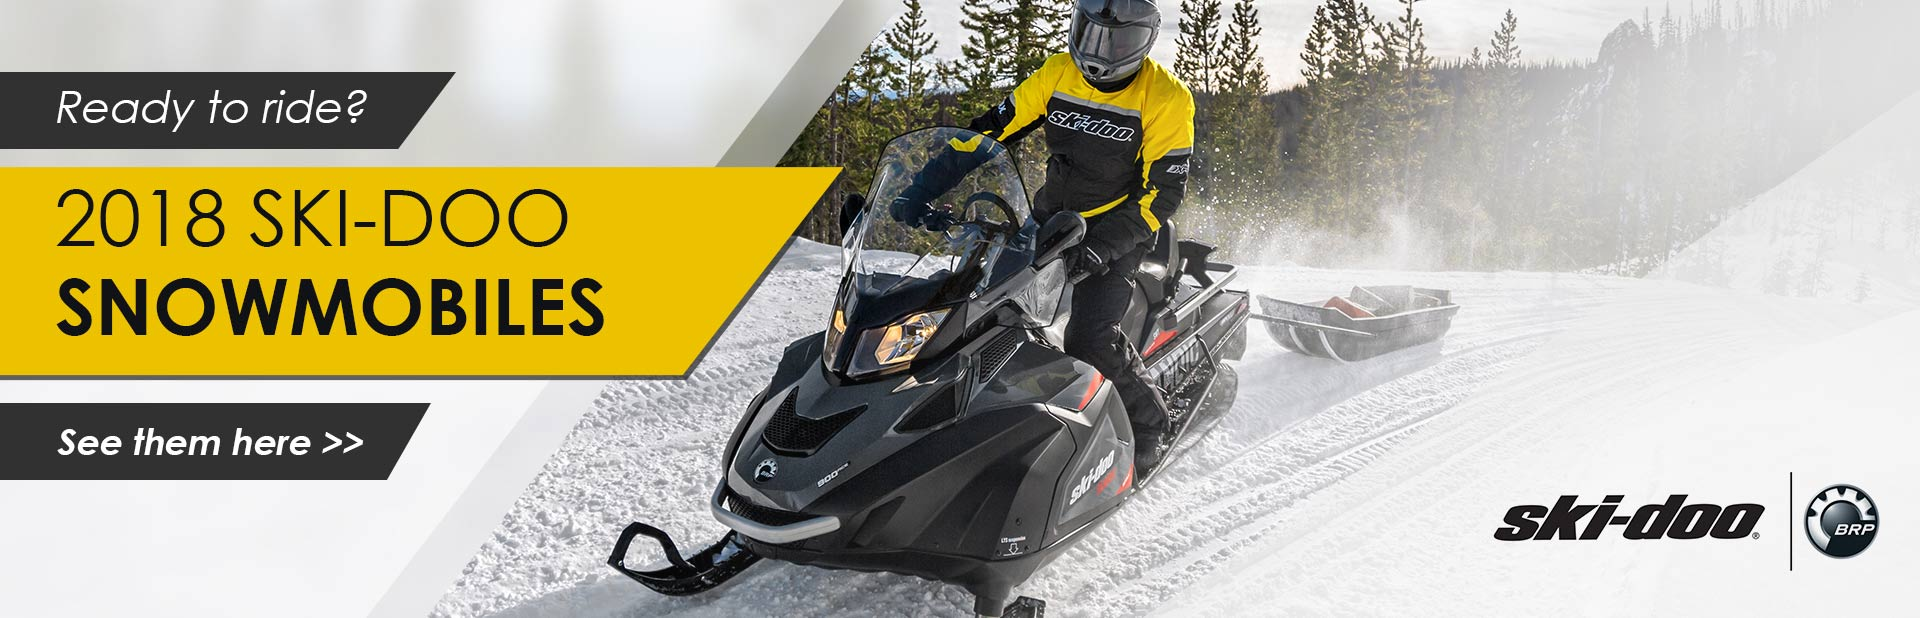 2018 Ski-Doo Snowmobiles: Click here to view the models.